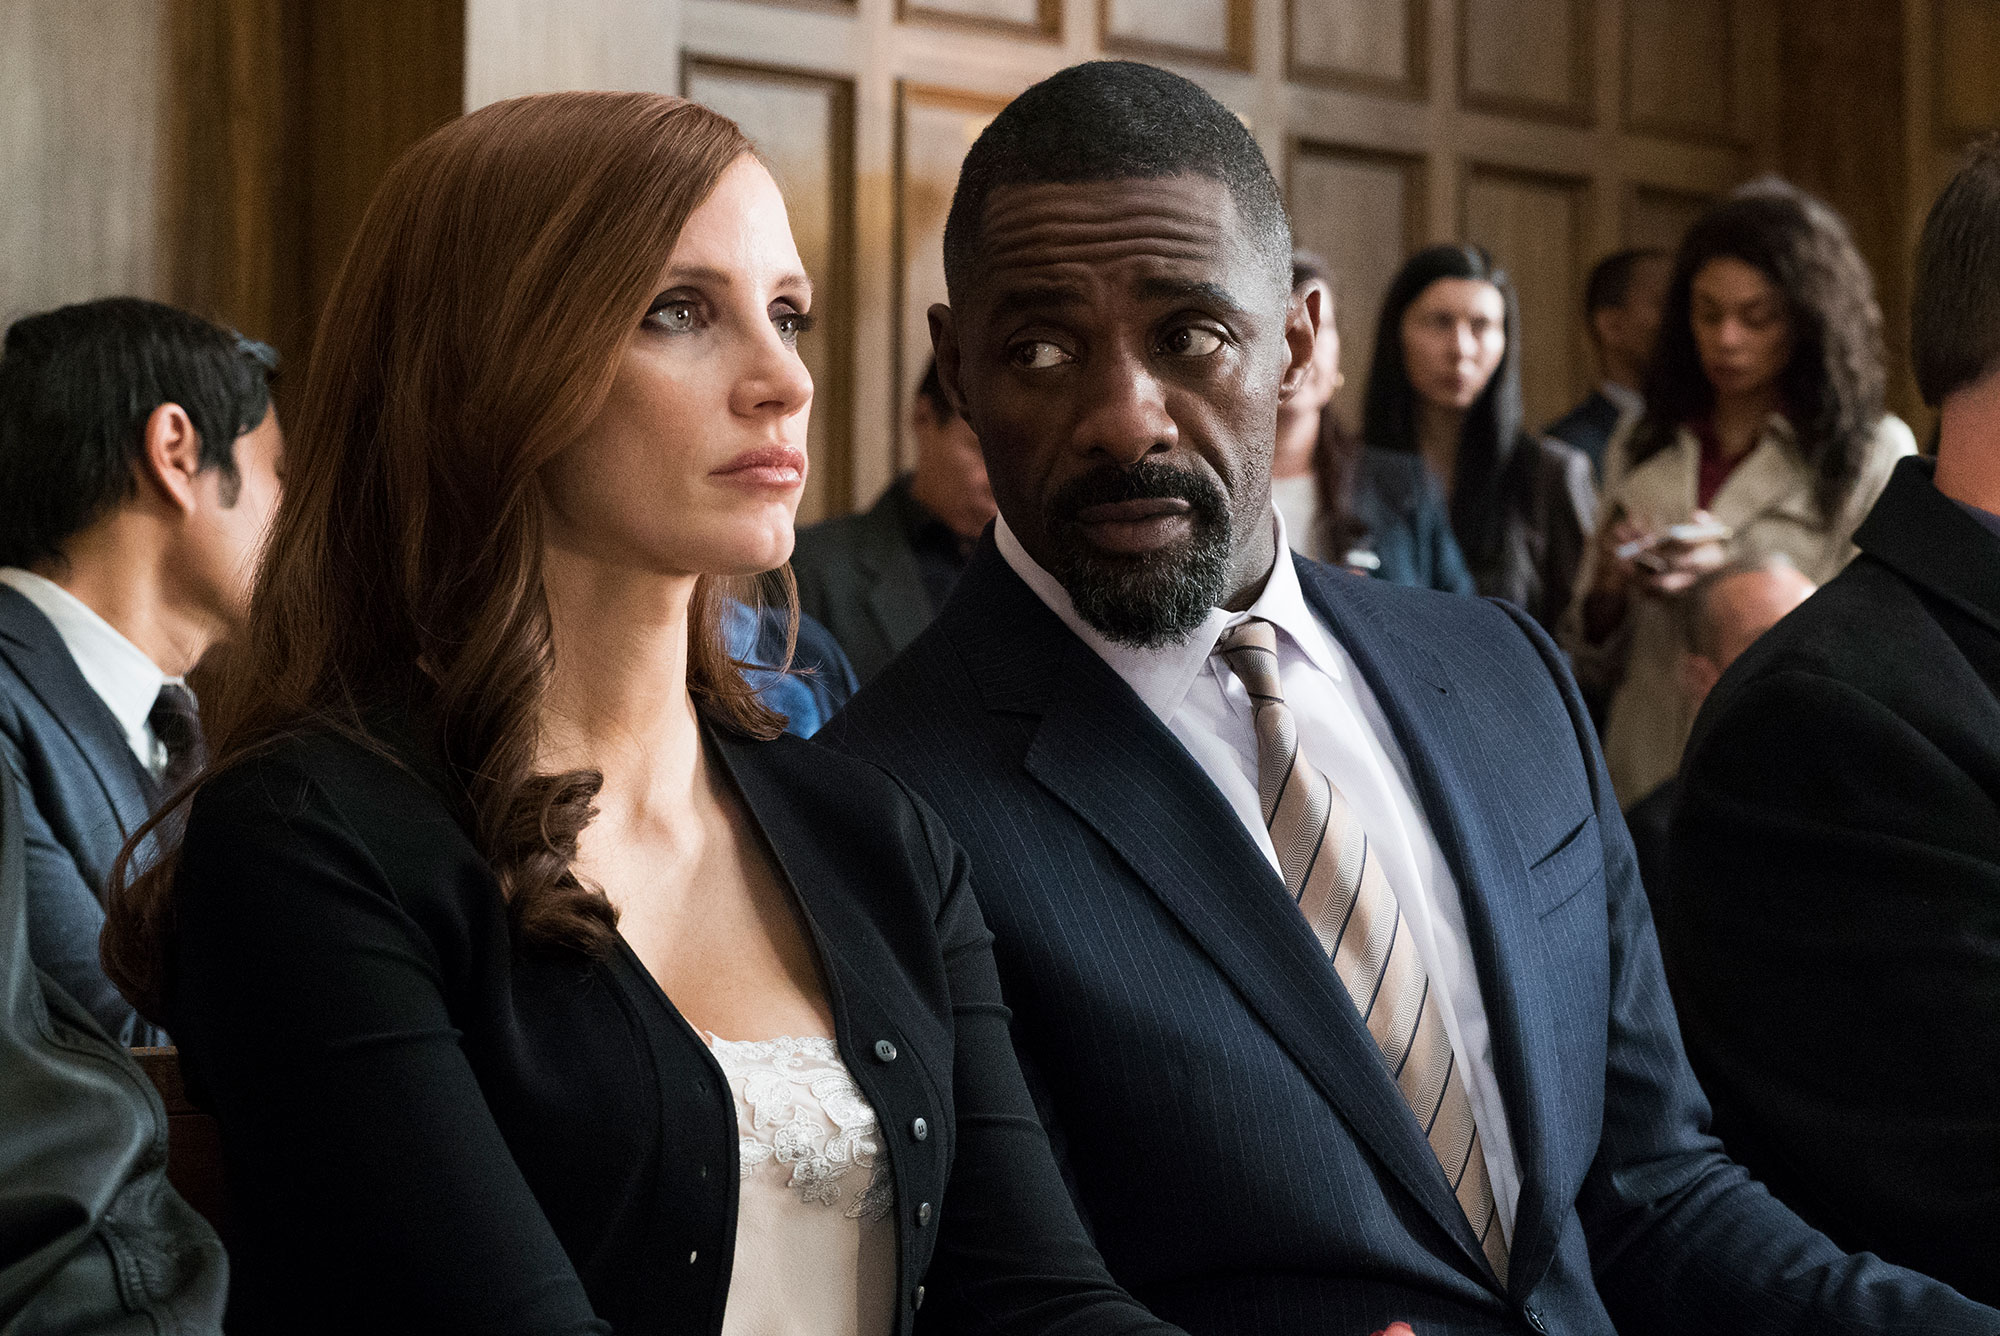 Molly's Game pulls a poker face? Nope, we don't know how the game works